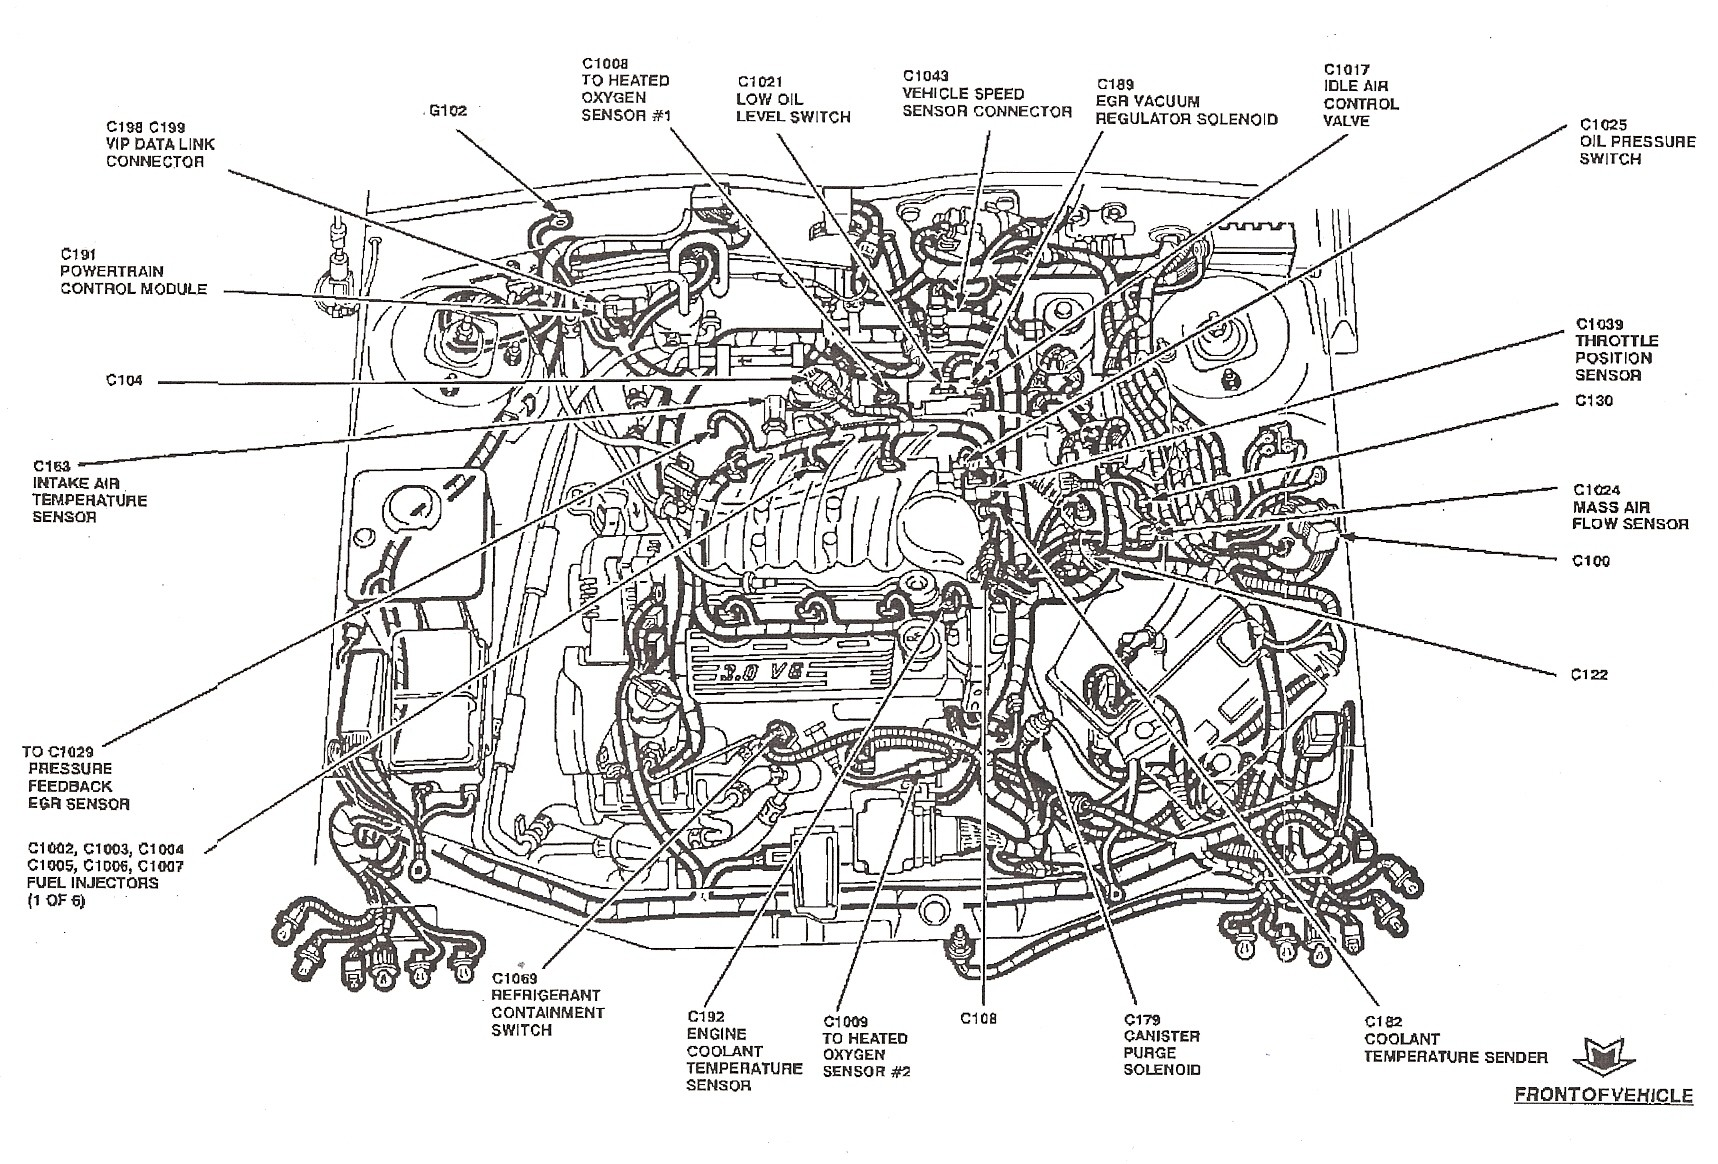 2002 ford Focus Se Engine Diagram 2011 ford Fiesta Engine Diagram Wiring Diagram • Of 2002 ford Focus Se Engine Diagram